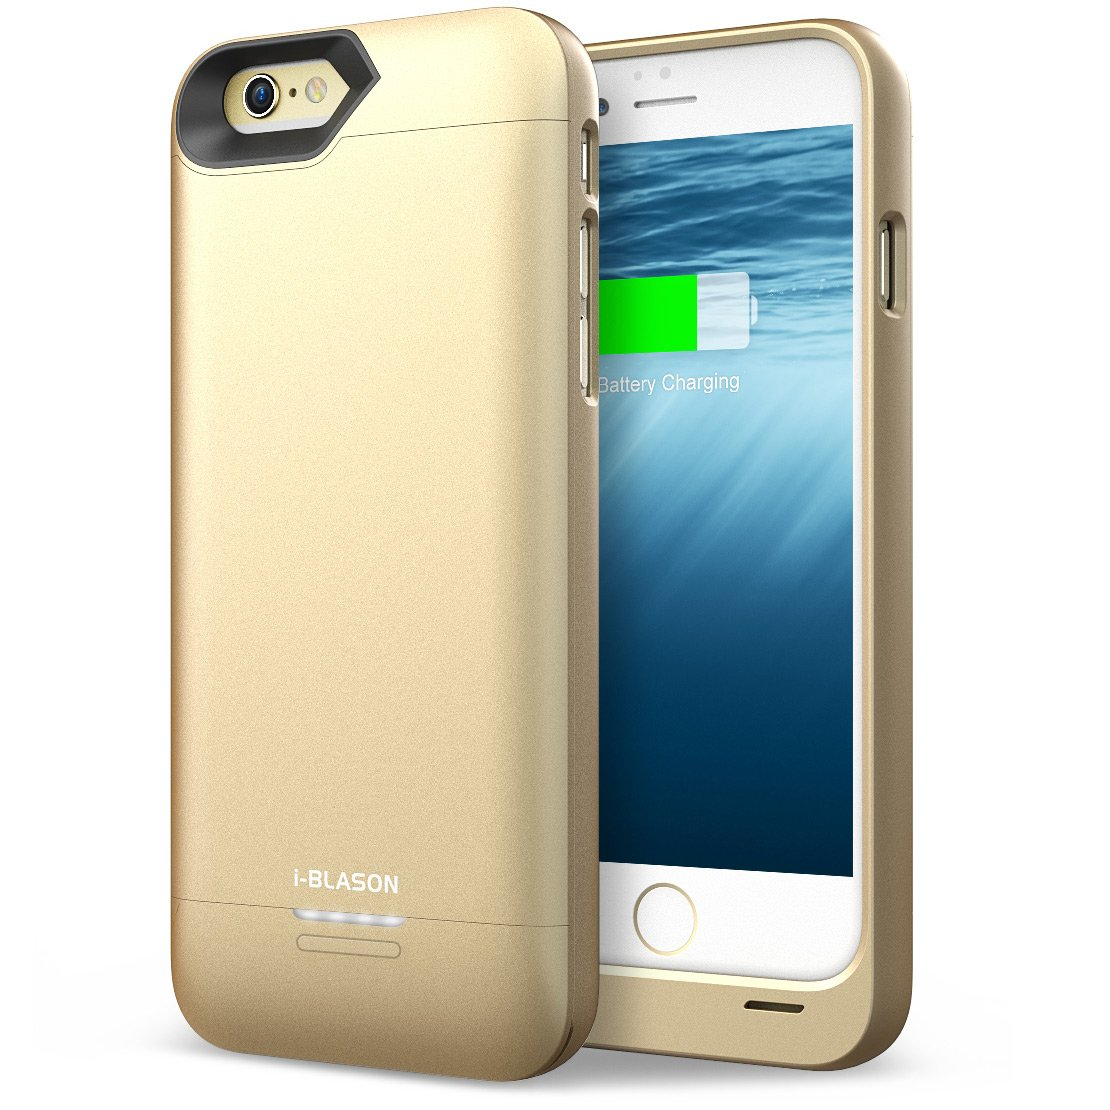 apple battery case for iphone 6 plus